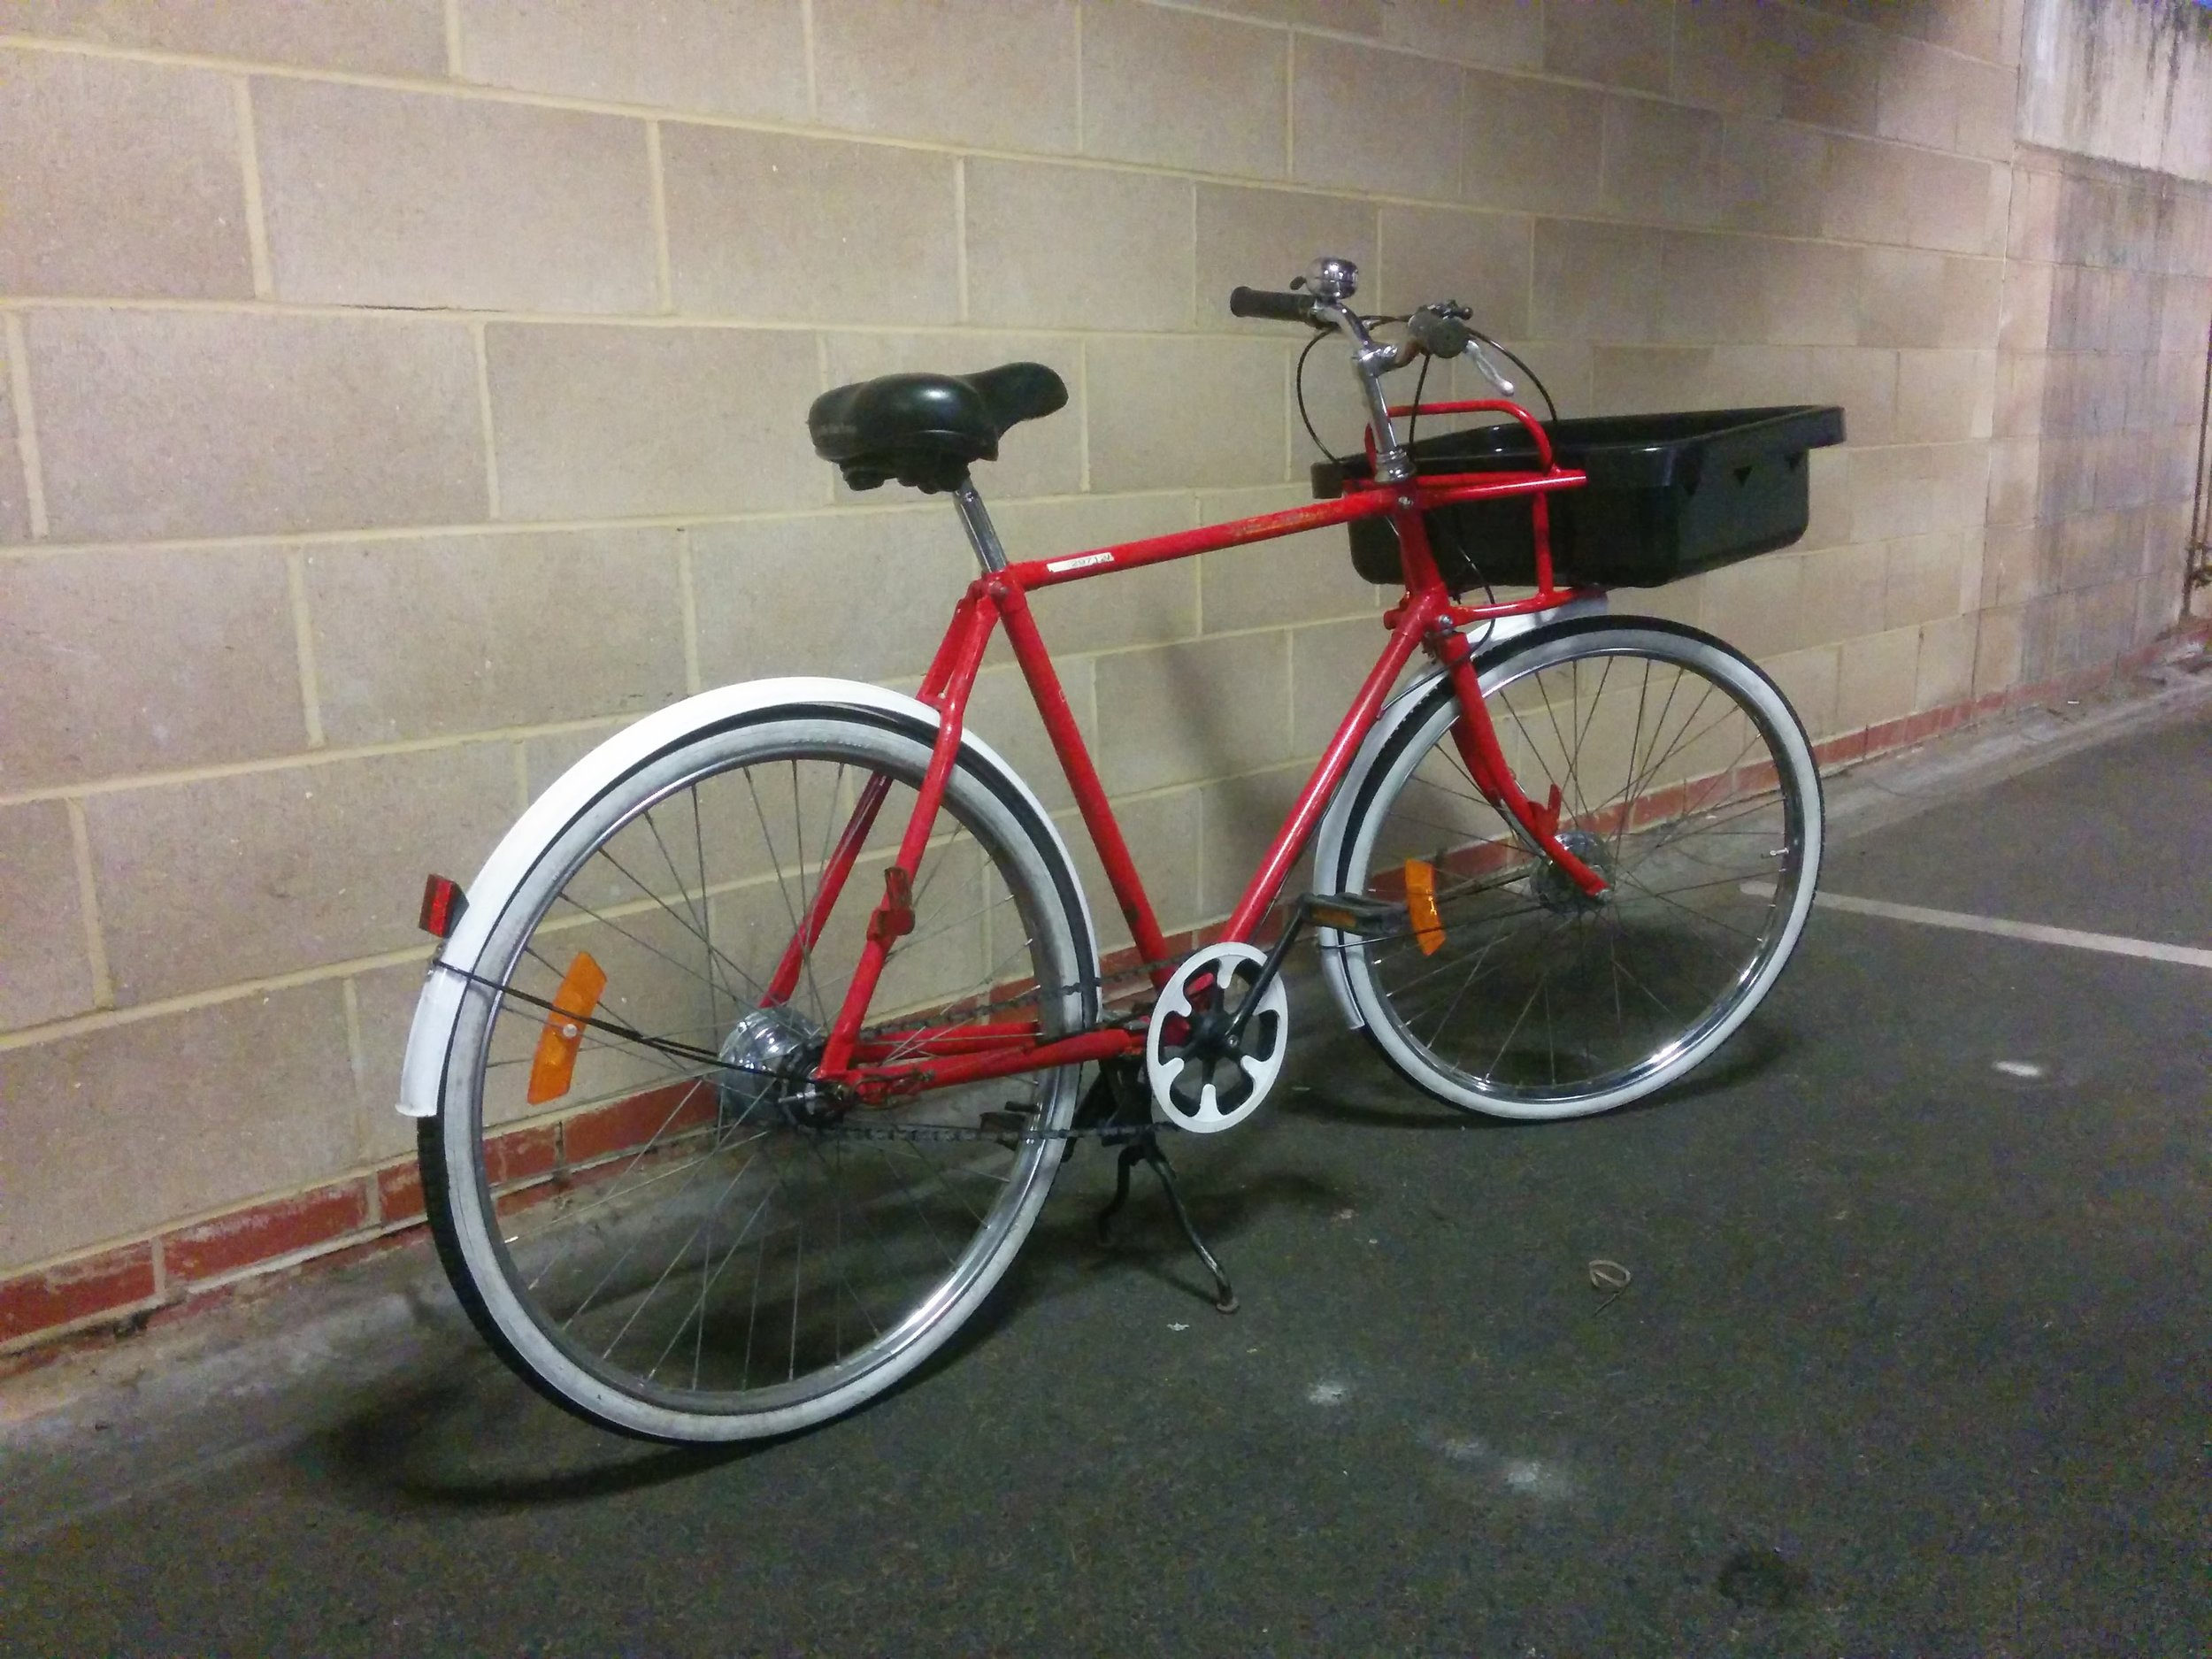 1998 Pashley Millenium post bike - Not for sale   Servicing -  built up from 3 bikes, fully restored, new front carrier   February / July 2016